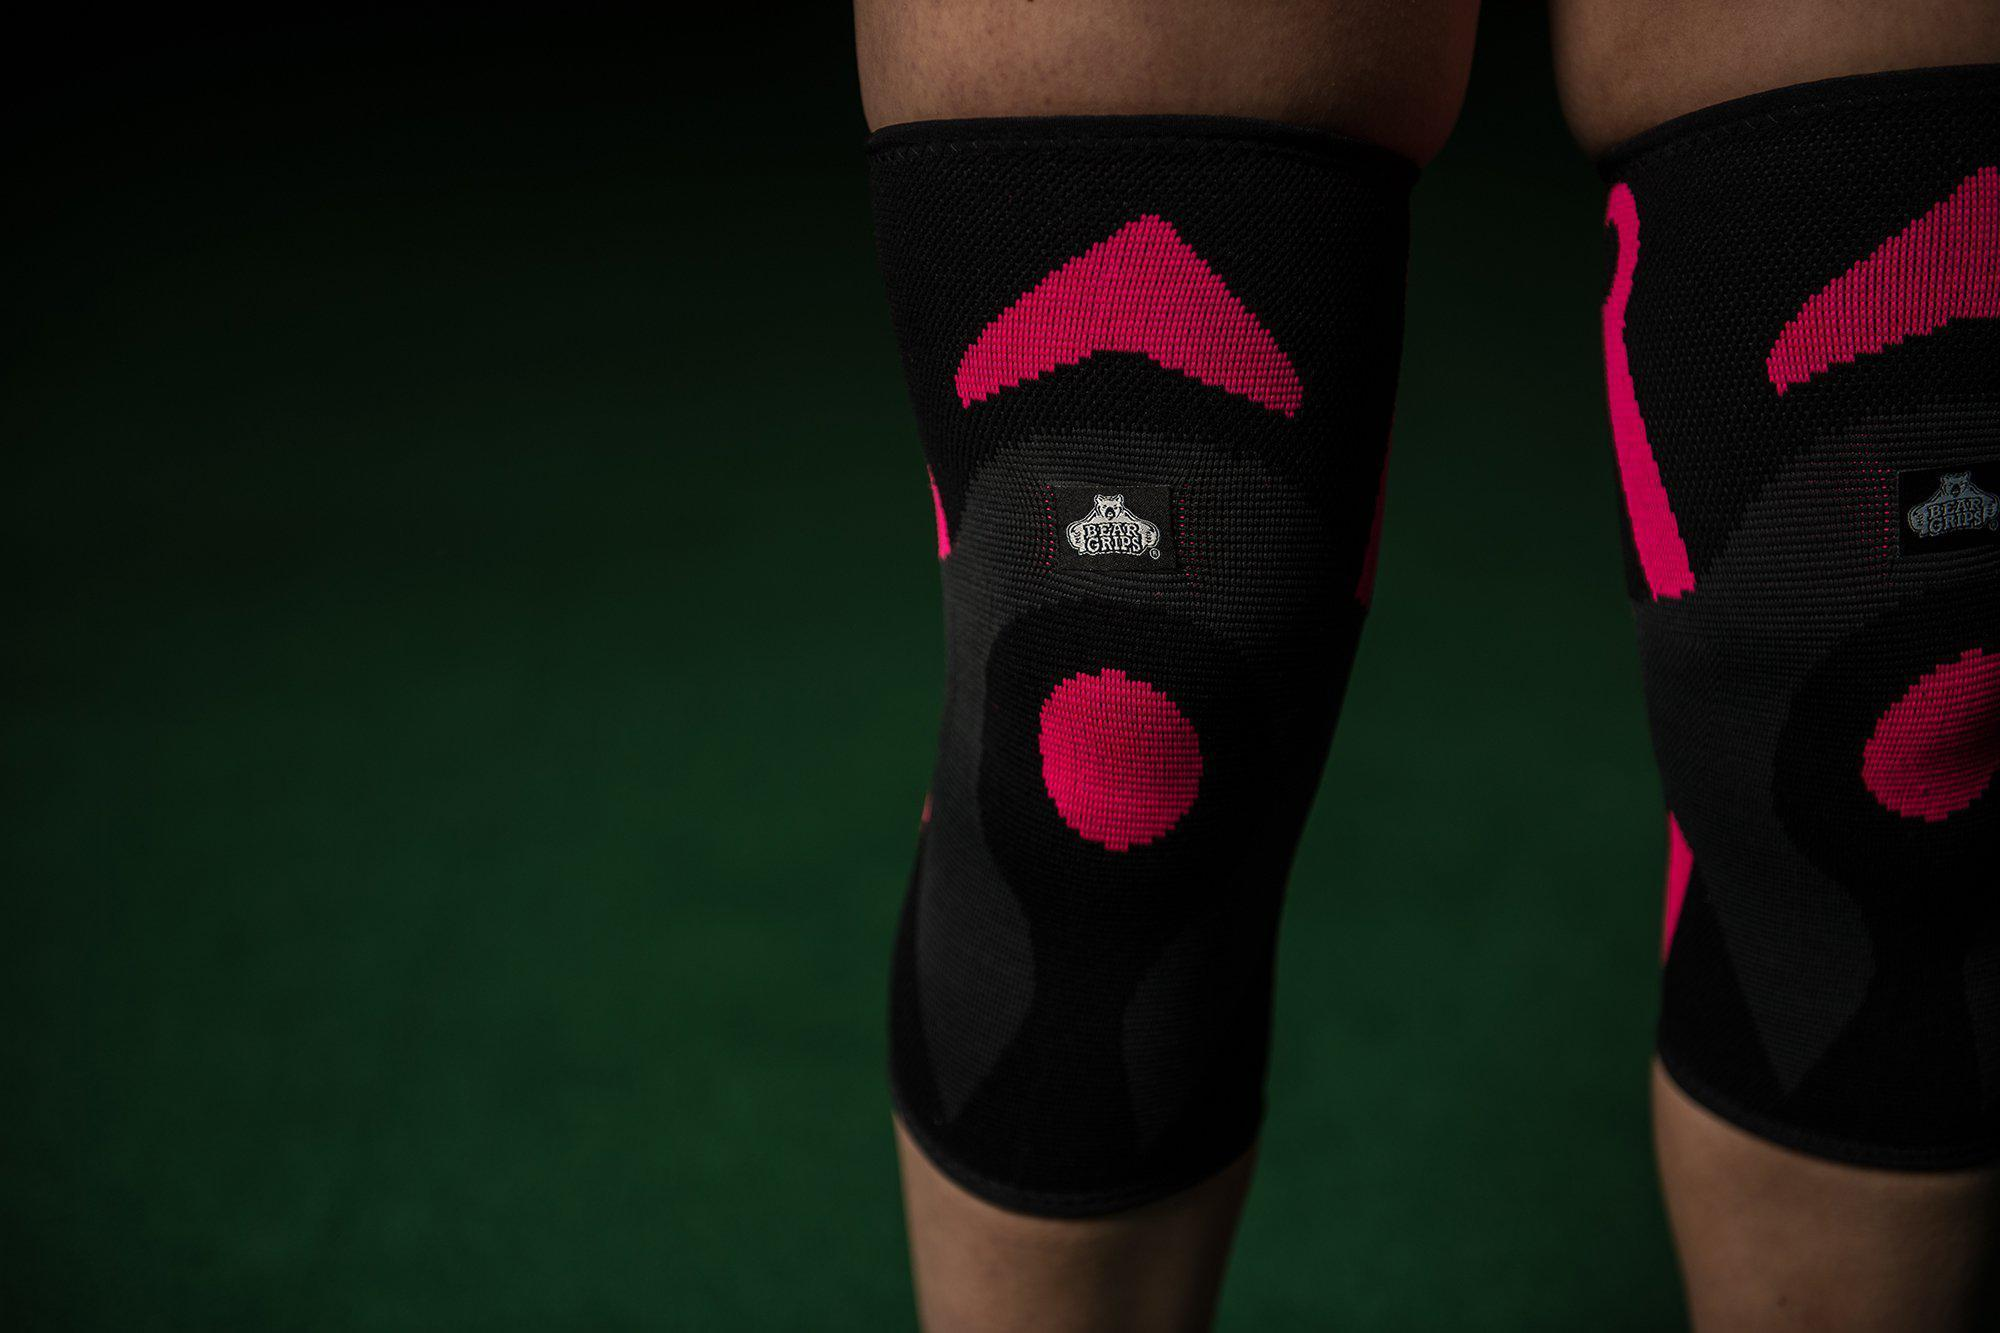 3mm Minimalistic Knee Sleeves-Knee Sleeves-BearGrips